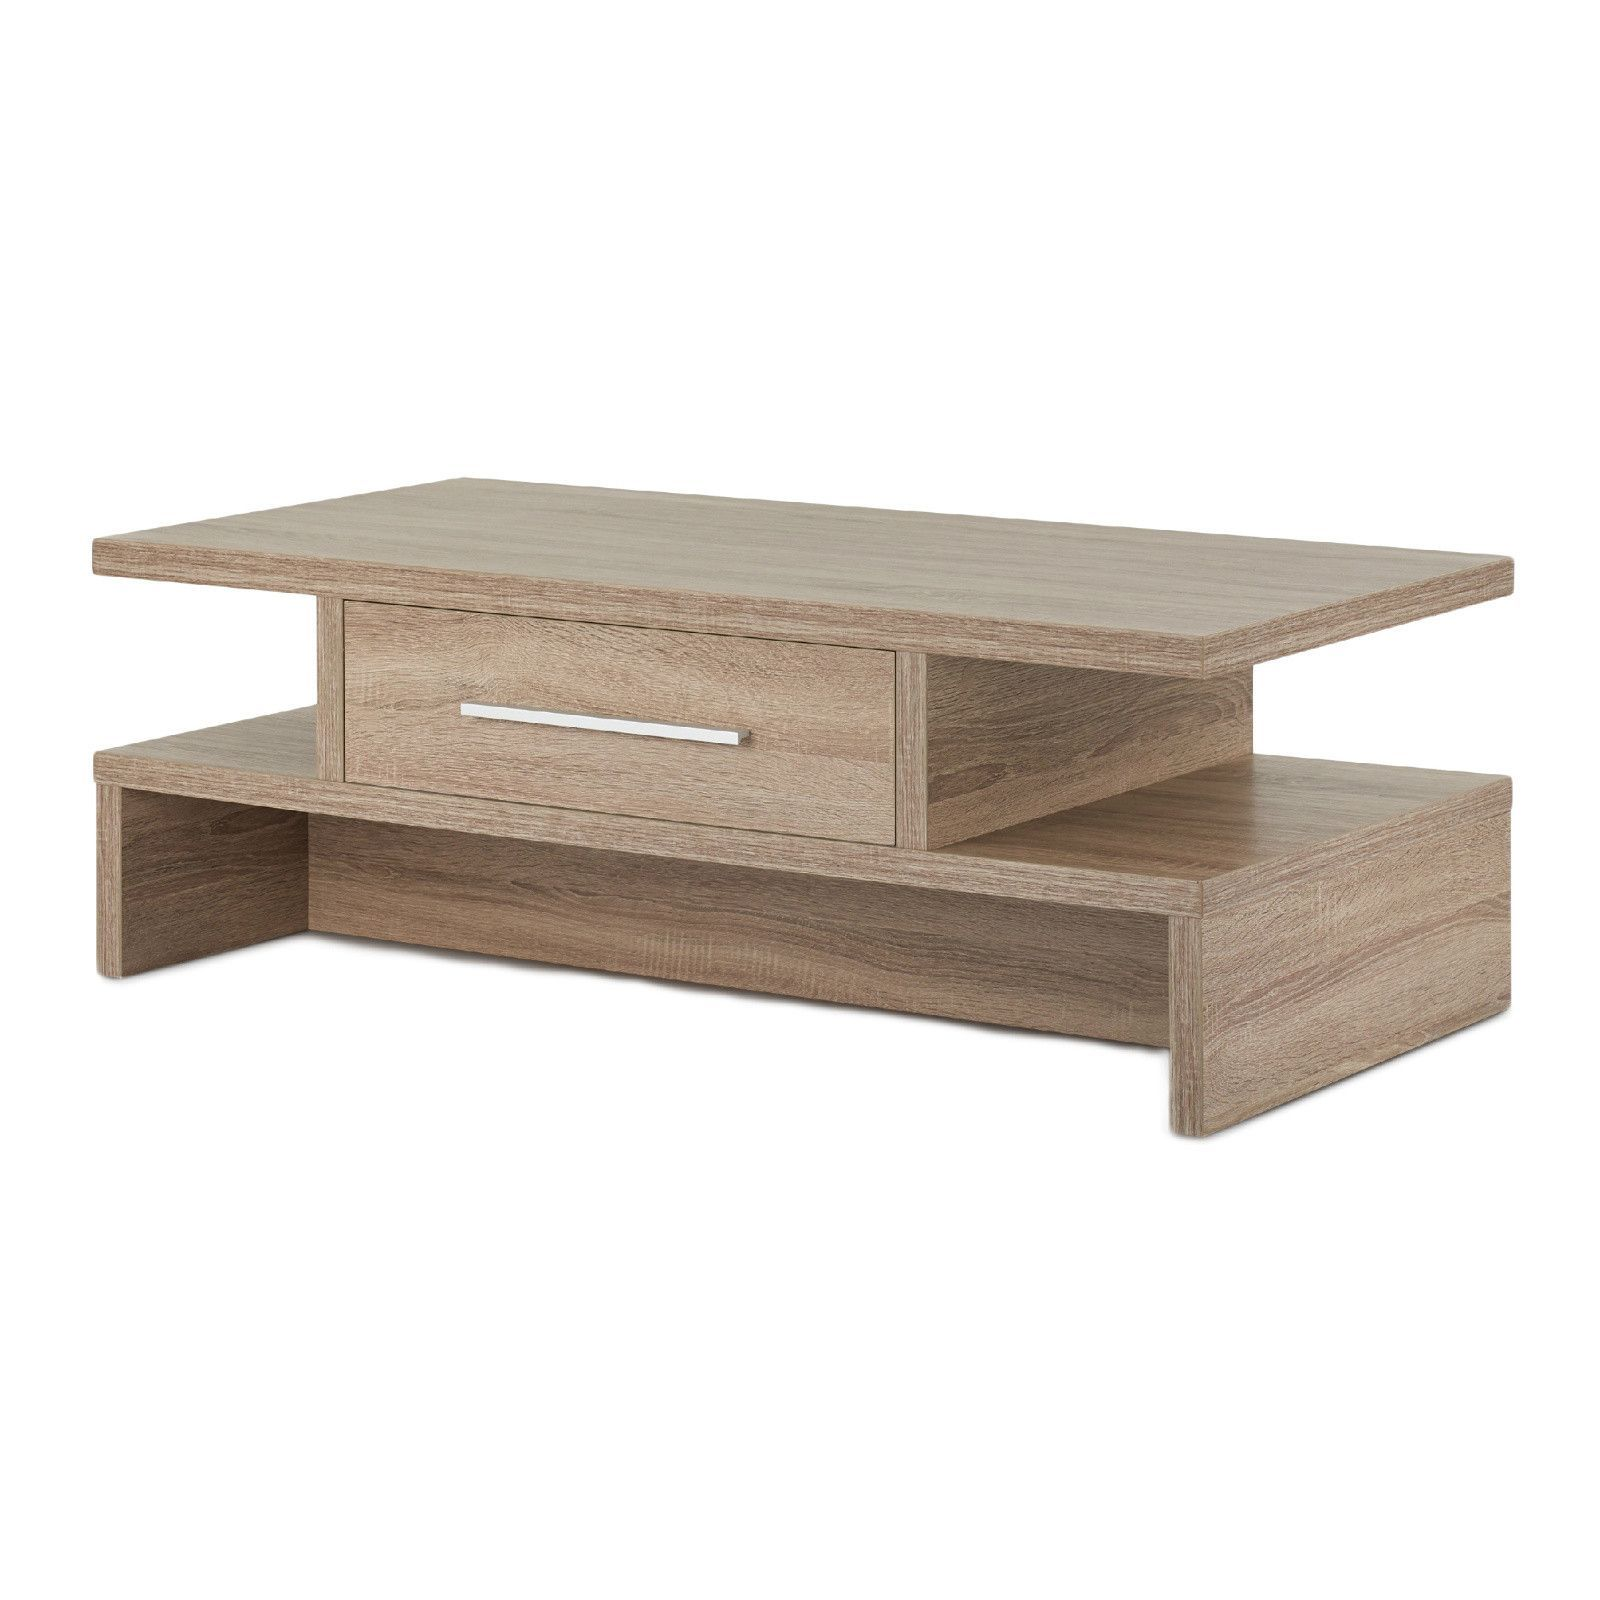 Coffee Table With Storage In 2021 Coffee Table Modern Coffee Tables Coffee Table Furniture [ 1600 x 1600 Pixel ]